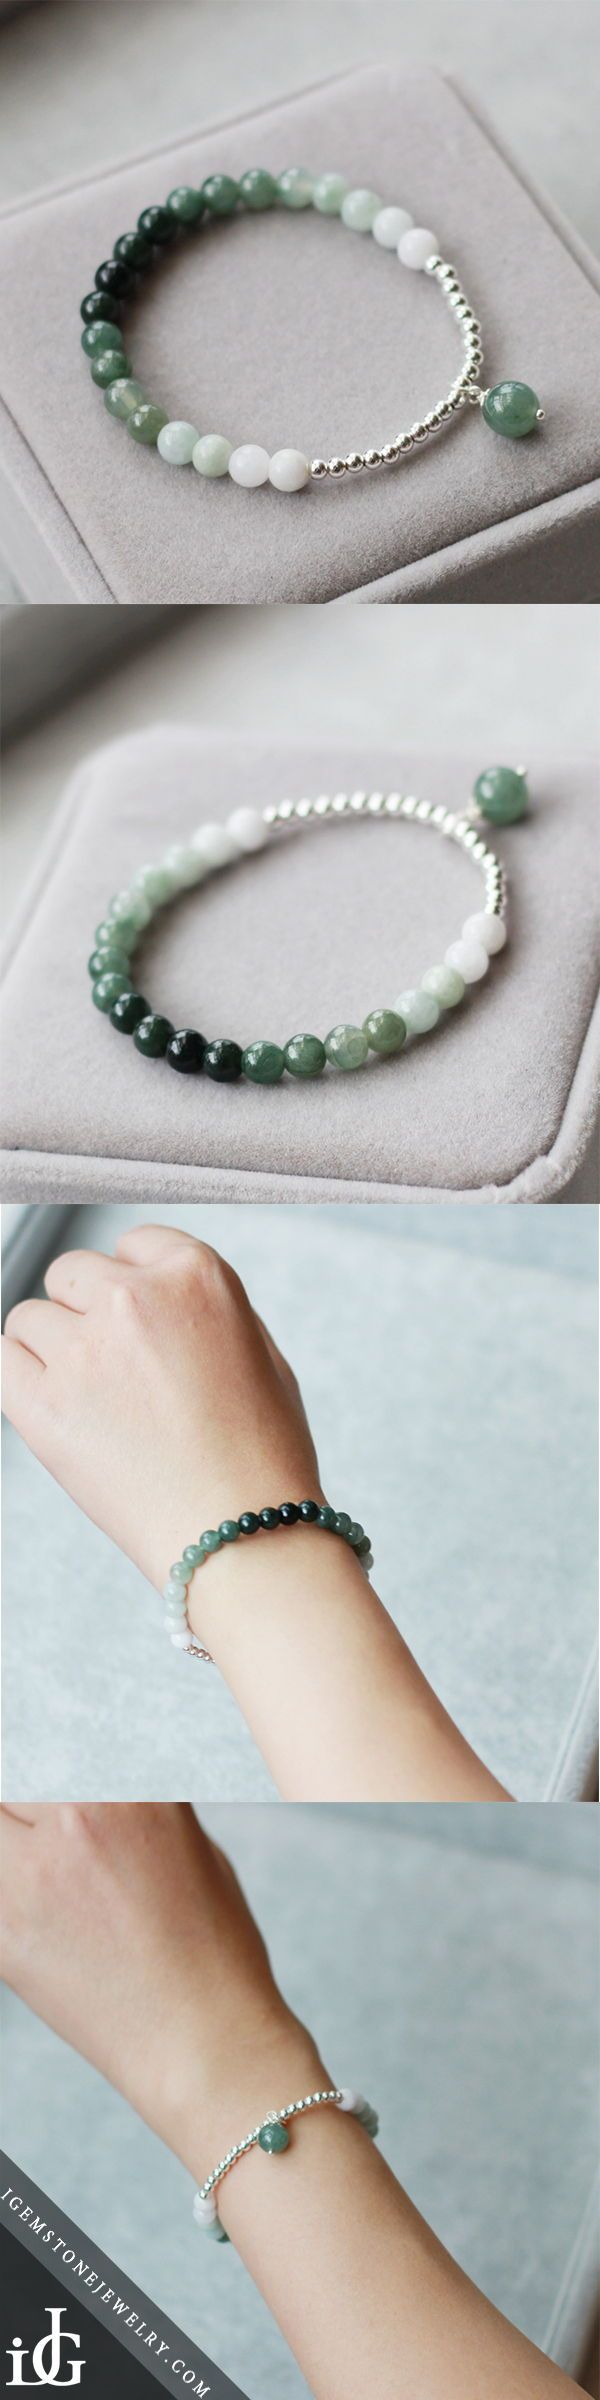 Green Jade Beaded Bracelet Handmade Gemstone Jewelry Accessories Gifts For Women – 16cm (suit for wrist size 14-15cm) – Accesories